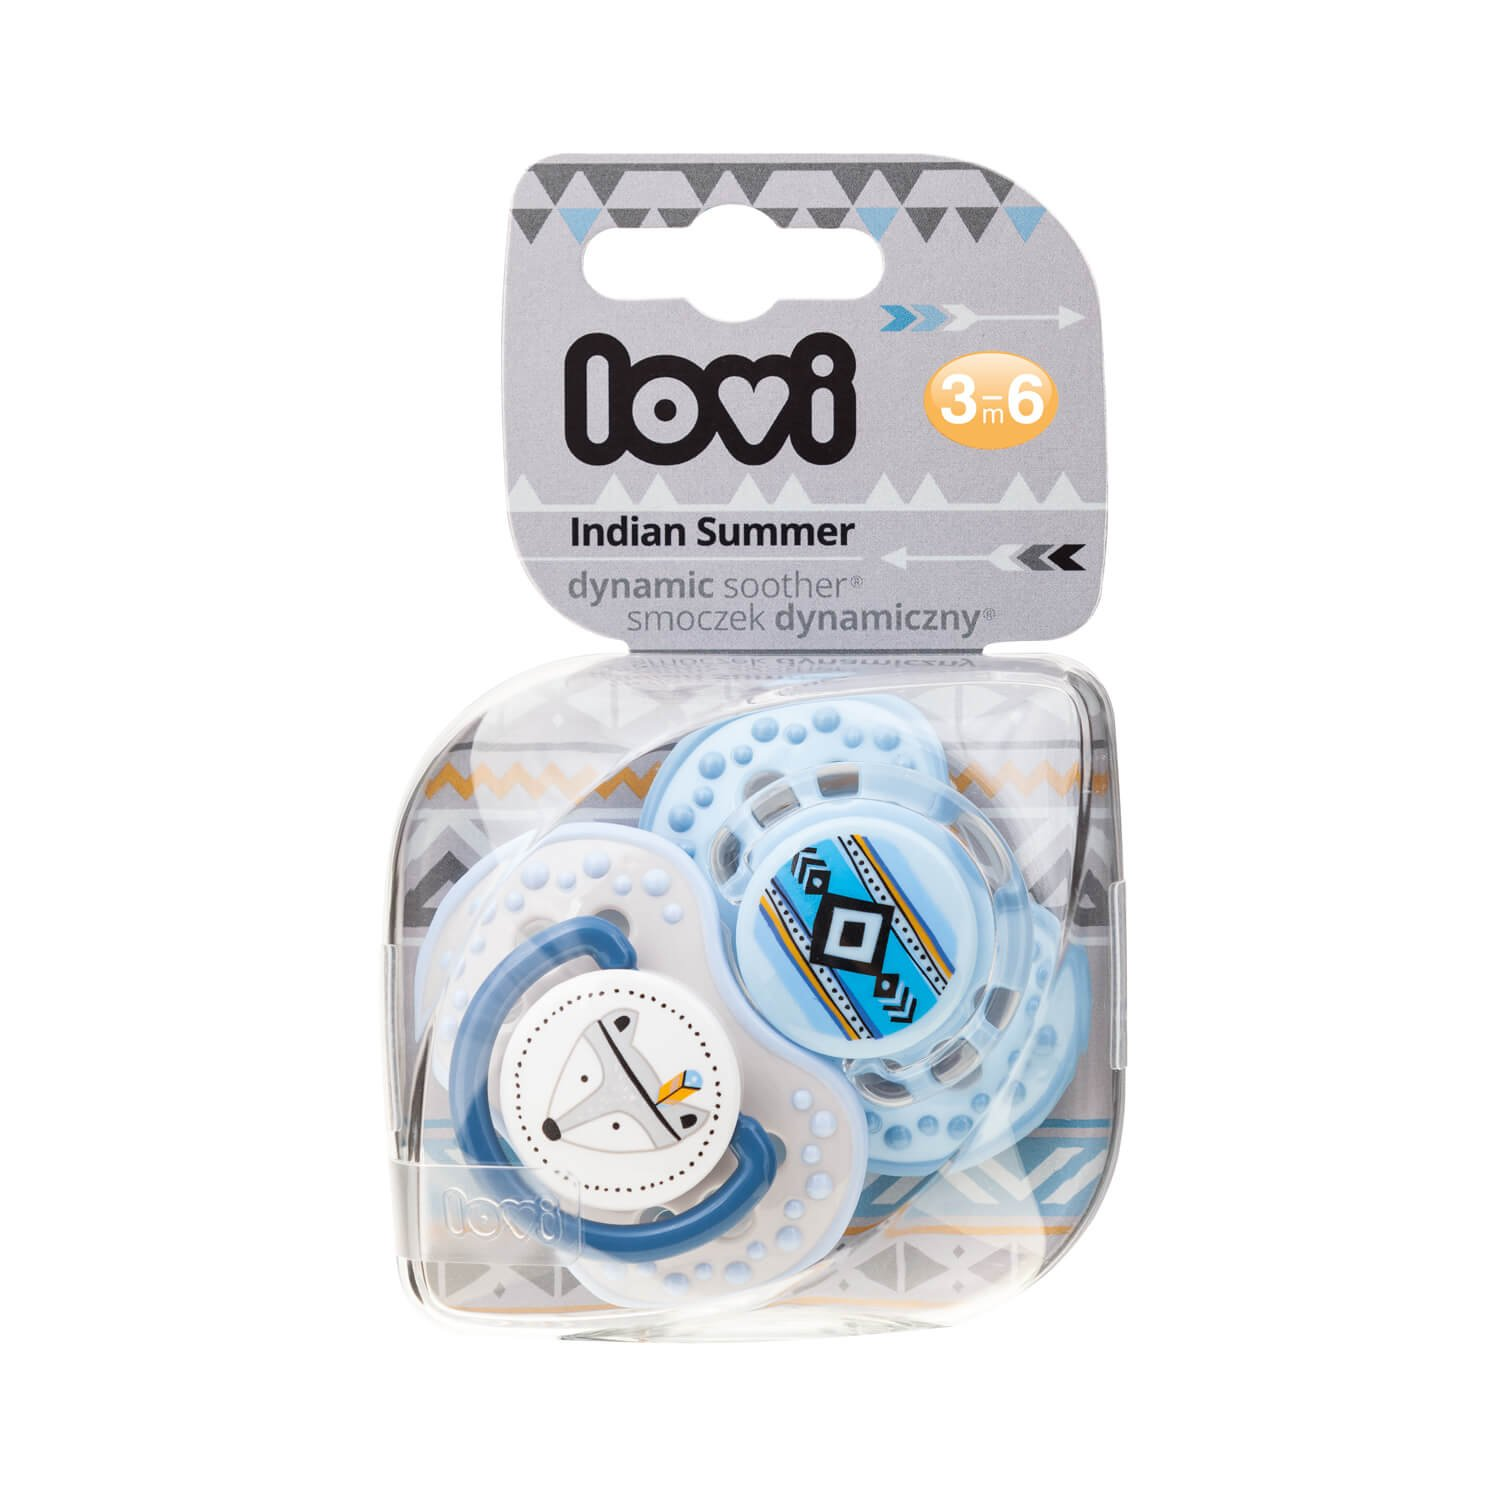 2/Pieces BPA Free 2/Protection Covers Indian Summer Lovi Dynamic Silicone Dummy Orthodontic